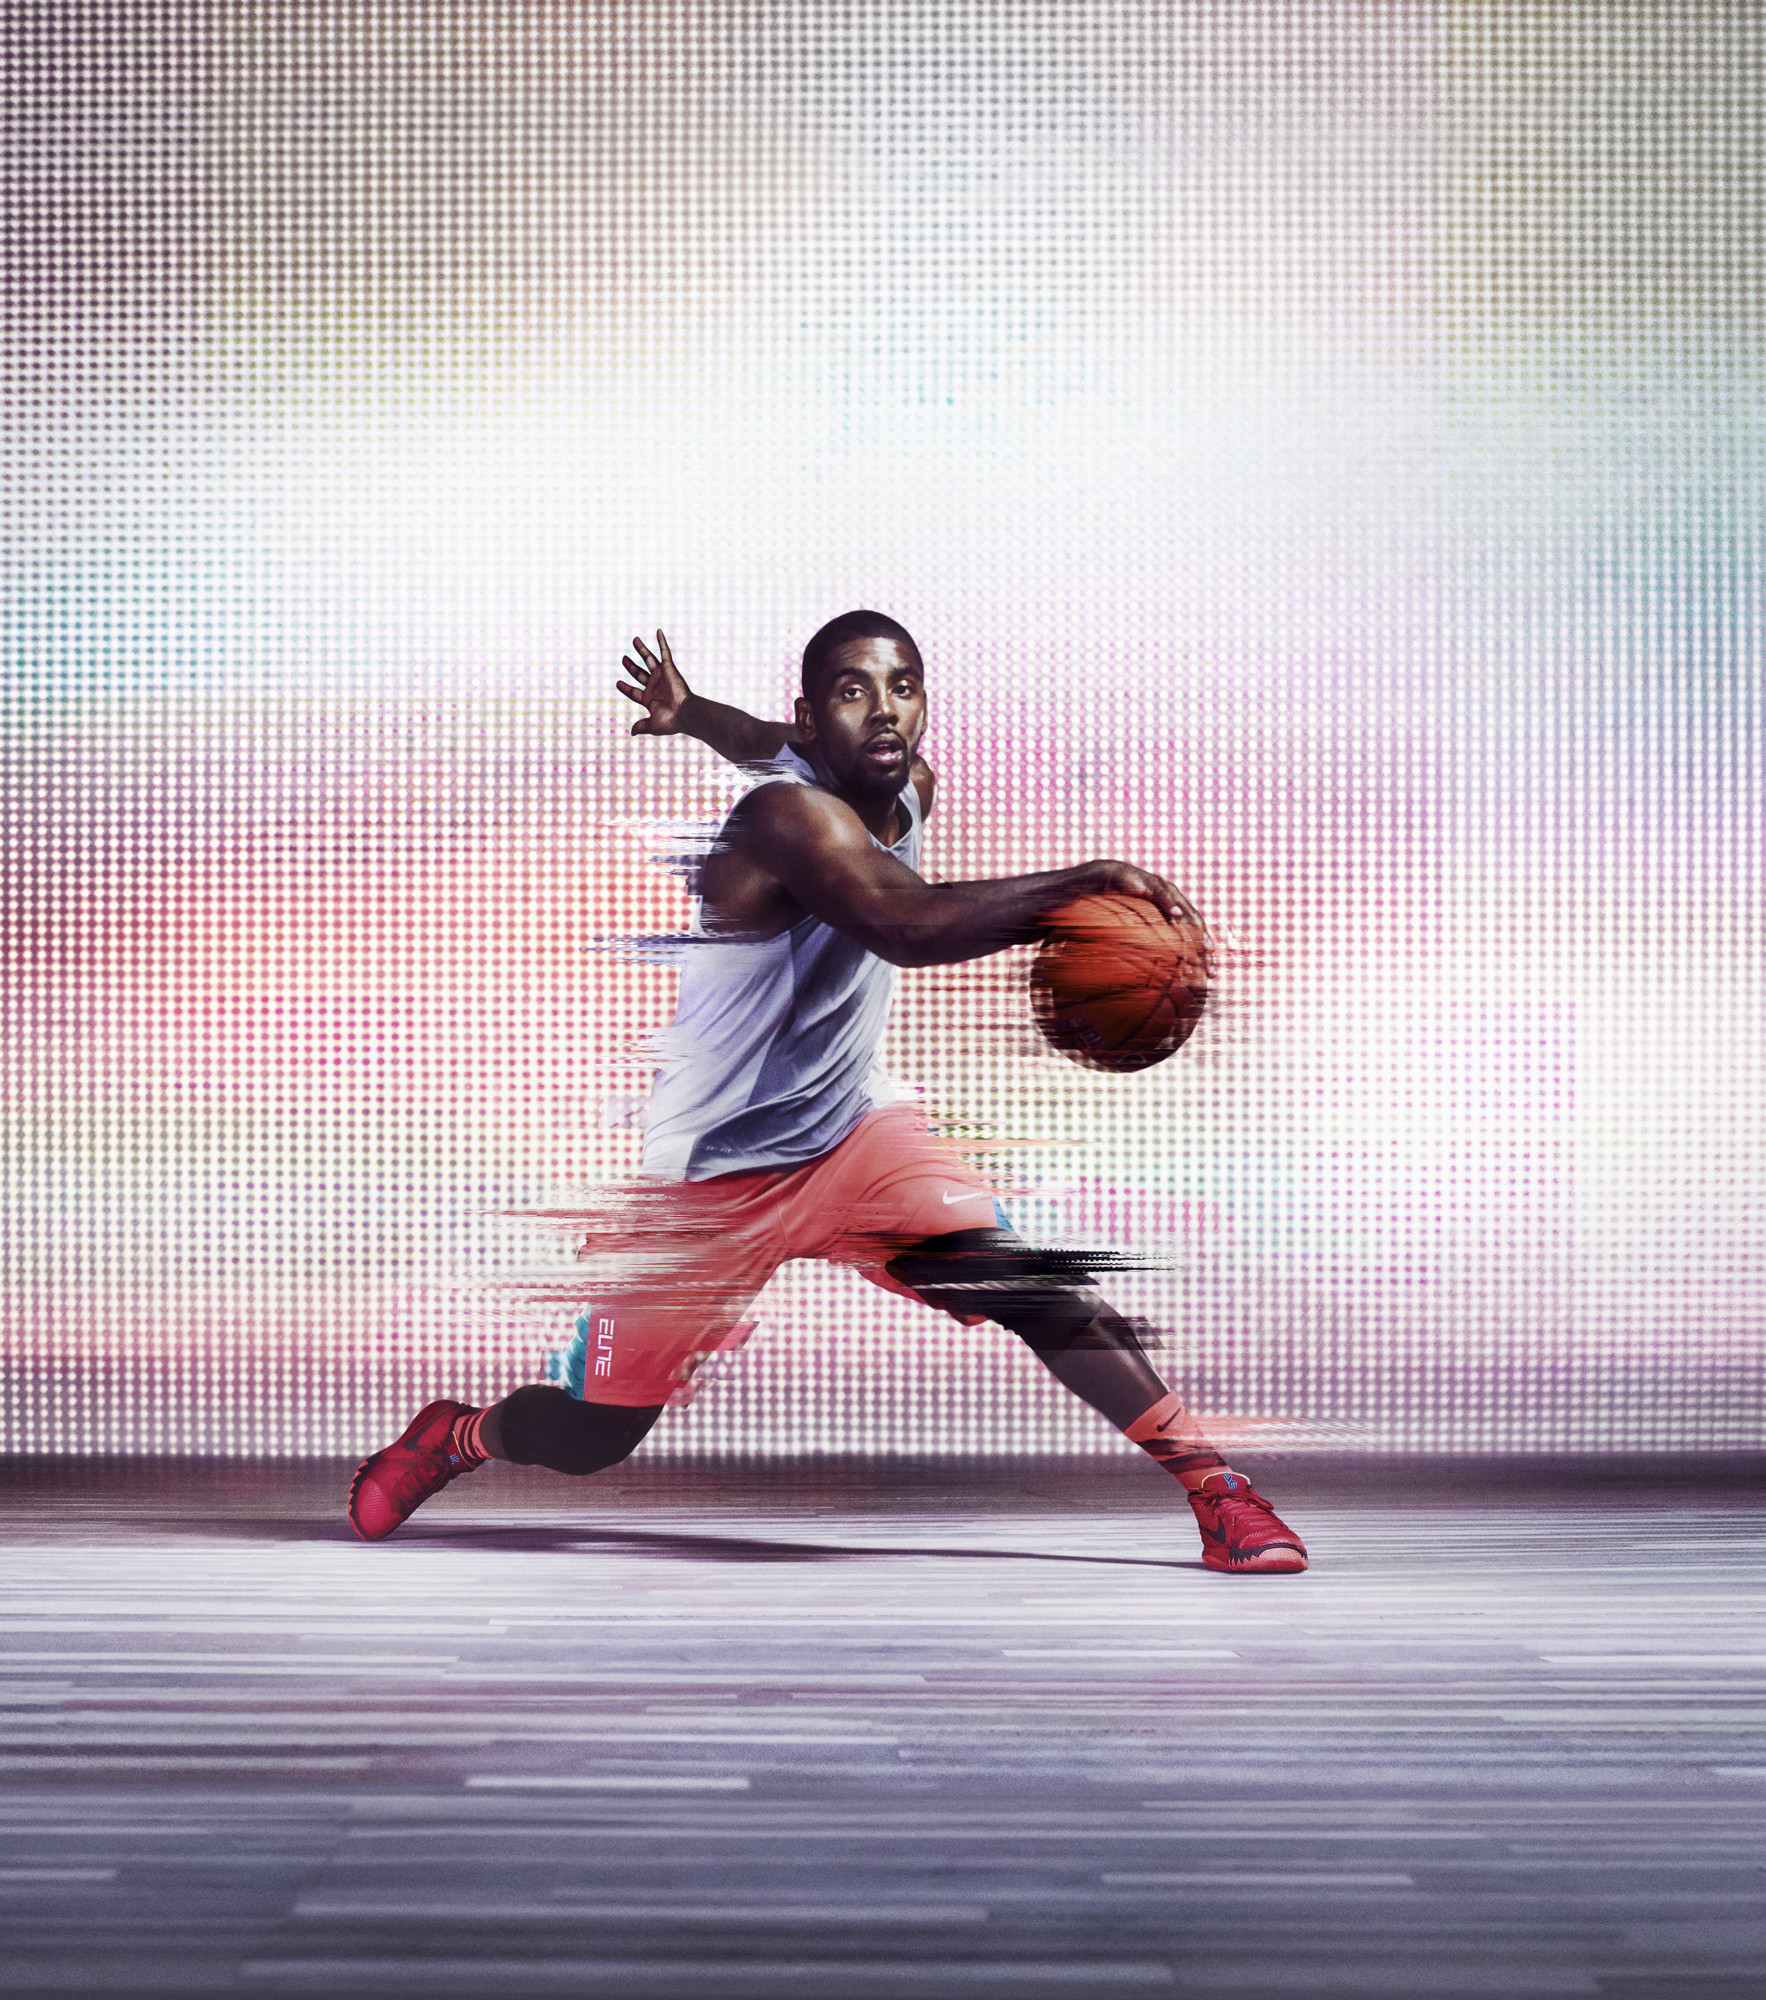 kyrie irving wallpapers 74 images